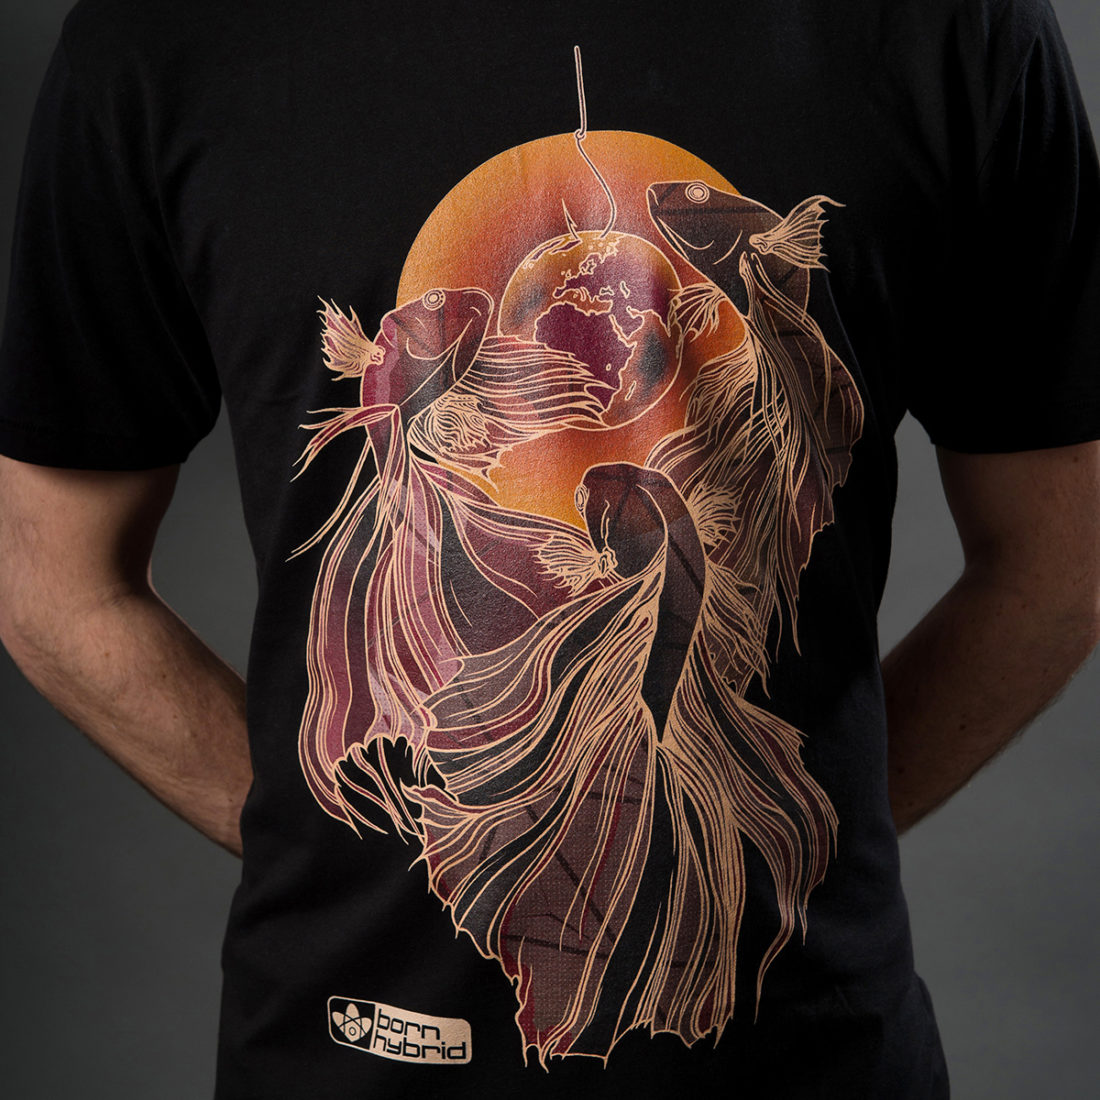 Betta fish t-shirt in organic cotton by sustainable clothing brand Born Hybrid